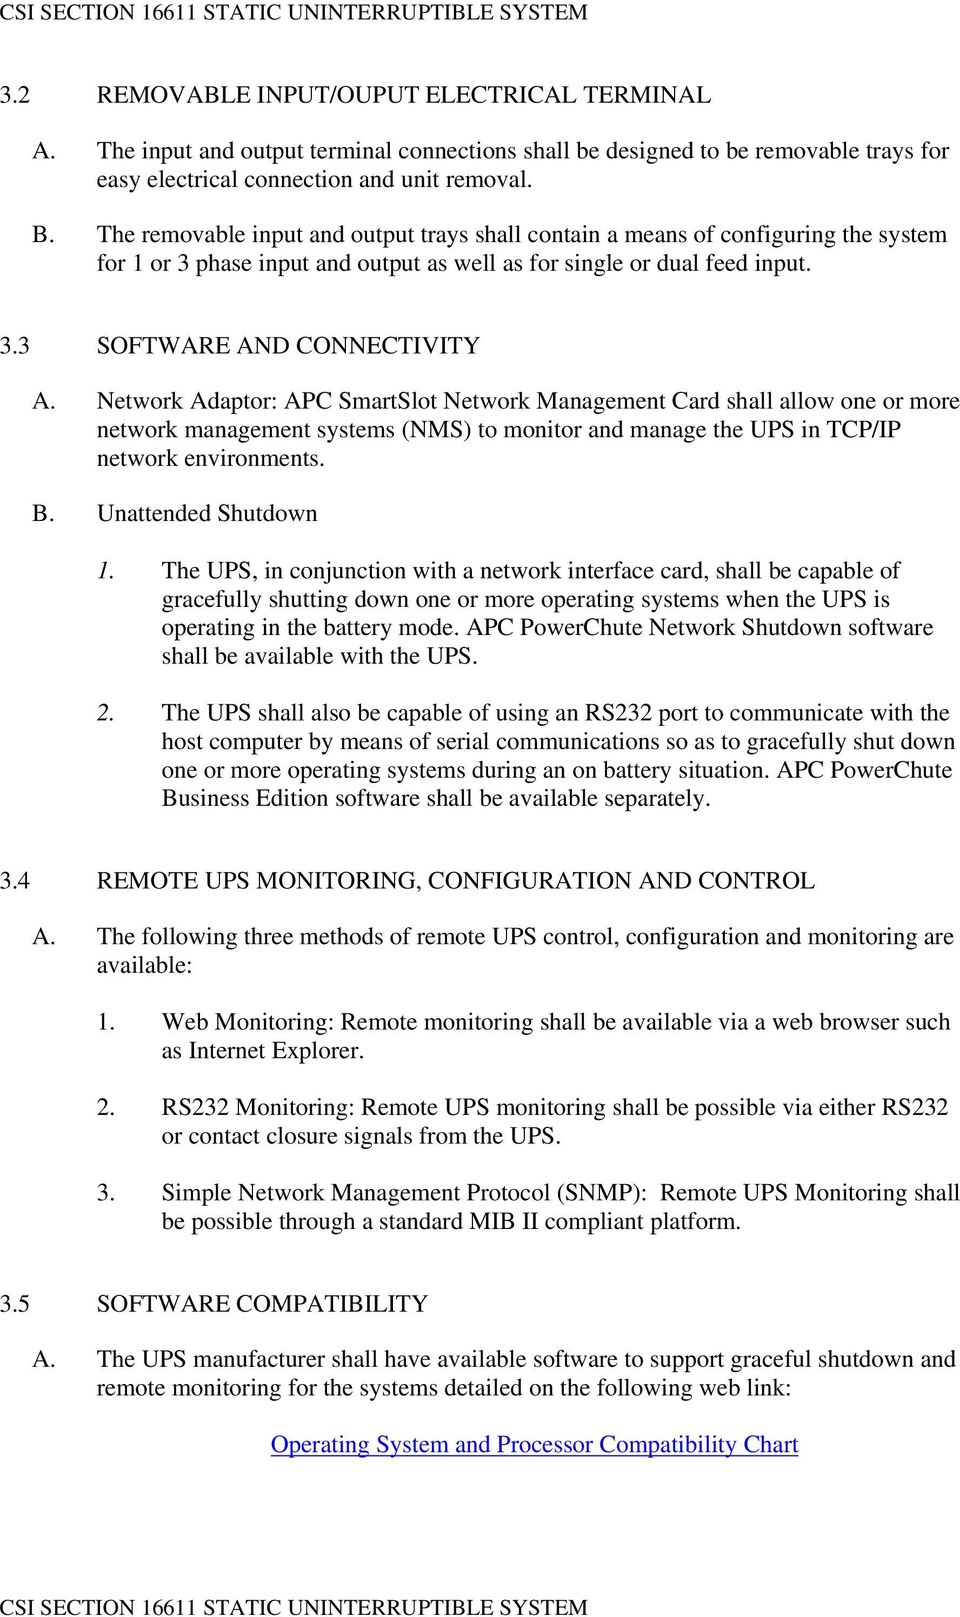 Apc Smart Ups Rt Guide Specifications For 15kva And 20kva Wiring Diagram Network Adaptor Smartslot Management Card Shall Allow One Or More Systems